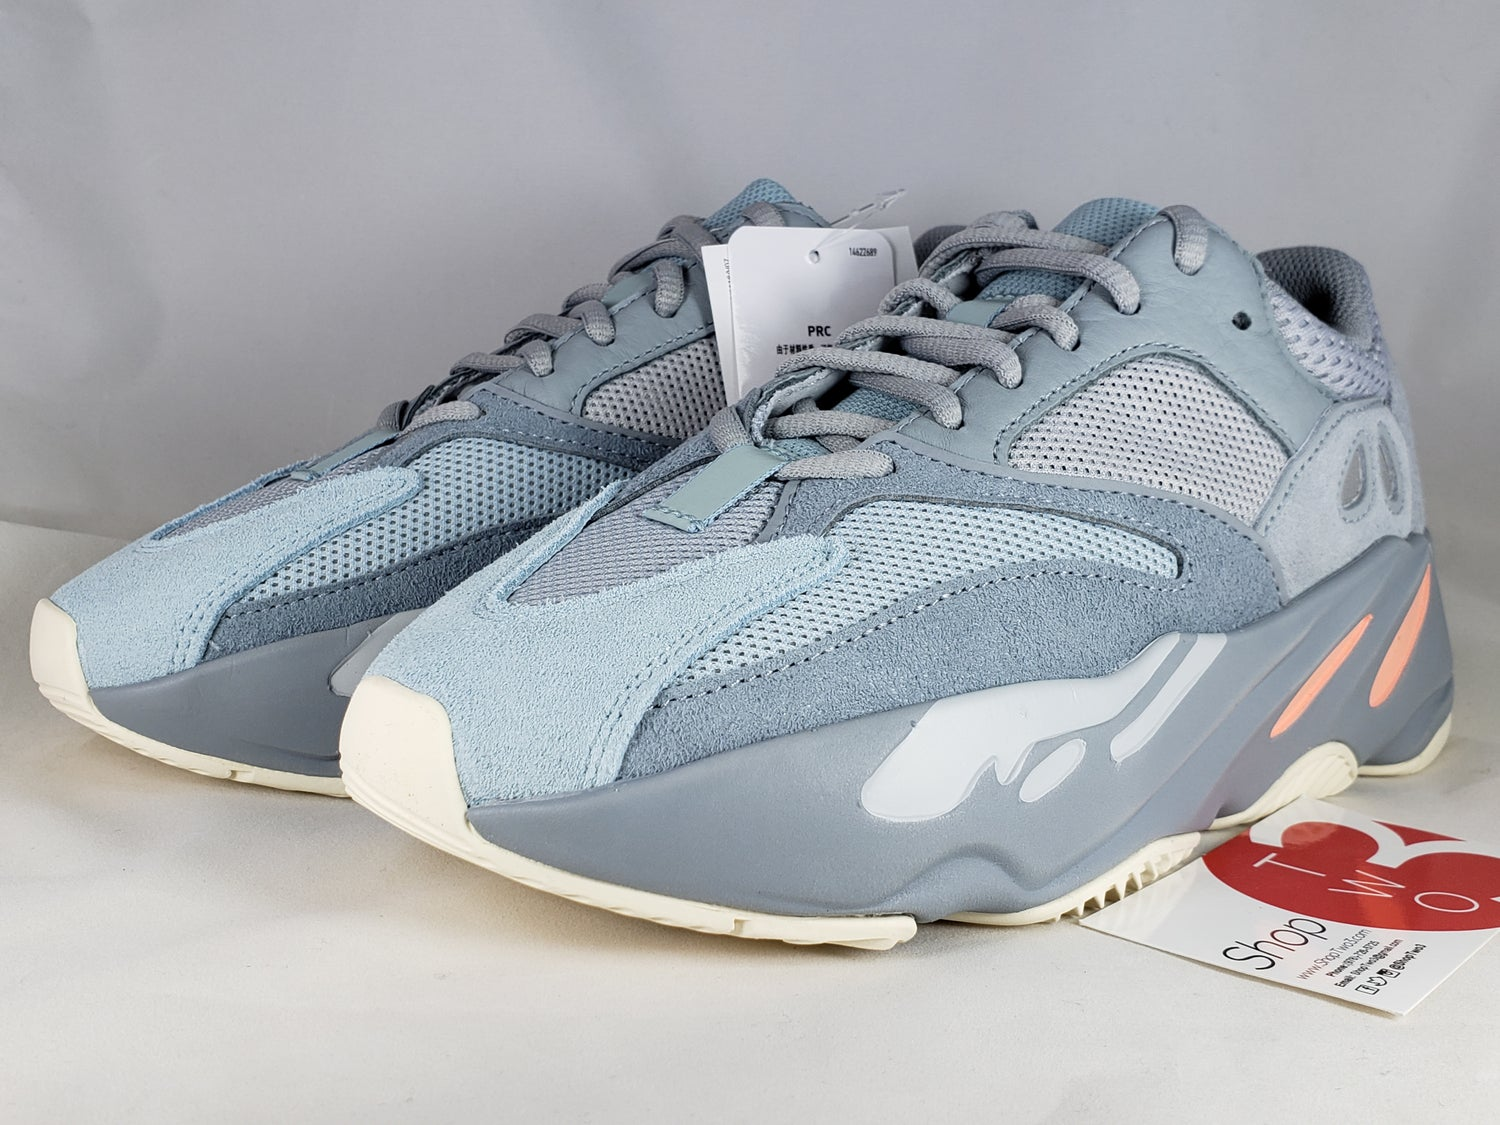 Image of Yeezy Boost 700 Inertia